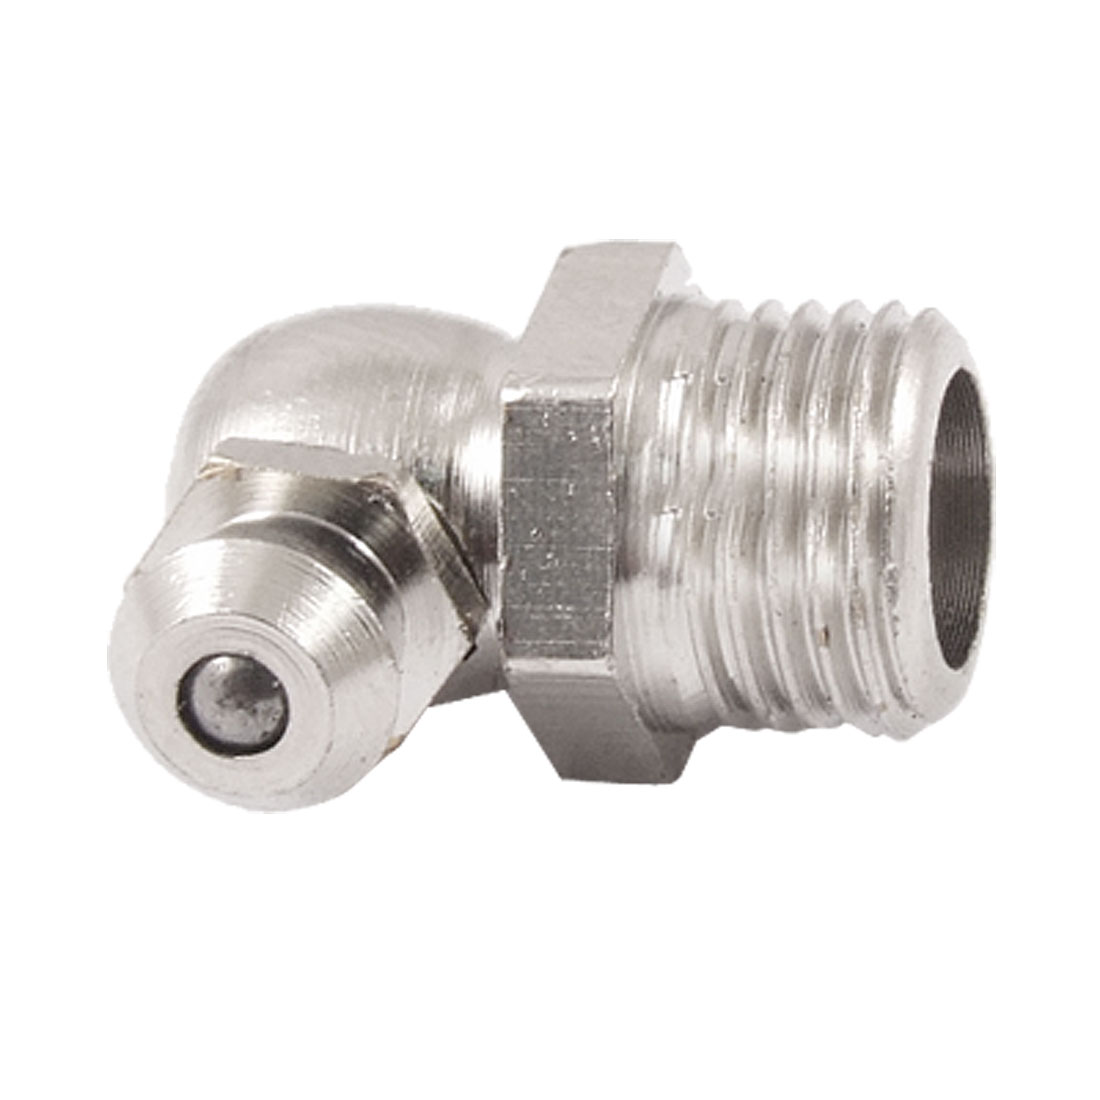 Metal 9.6mm Male Thread 90 Degree Angle Grease Nipple Zerk Fitting